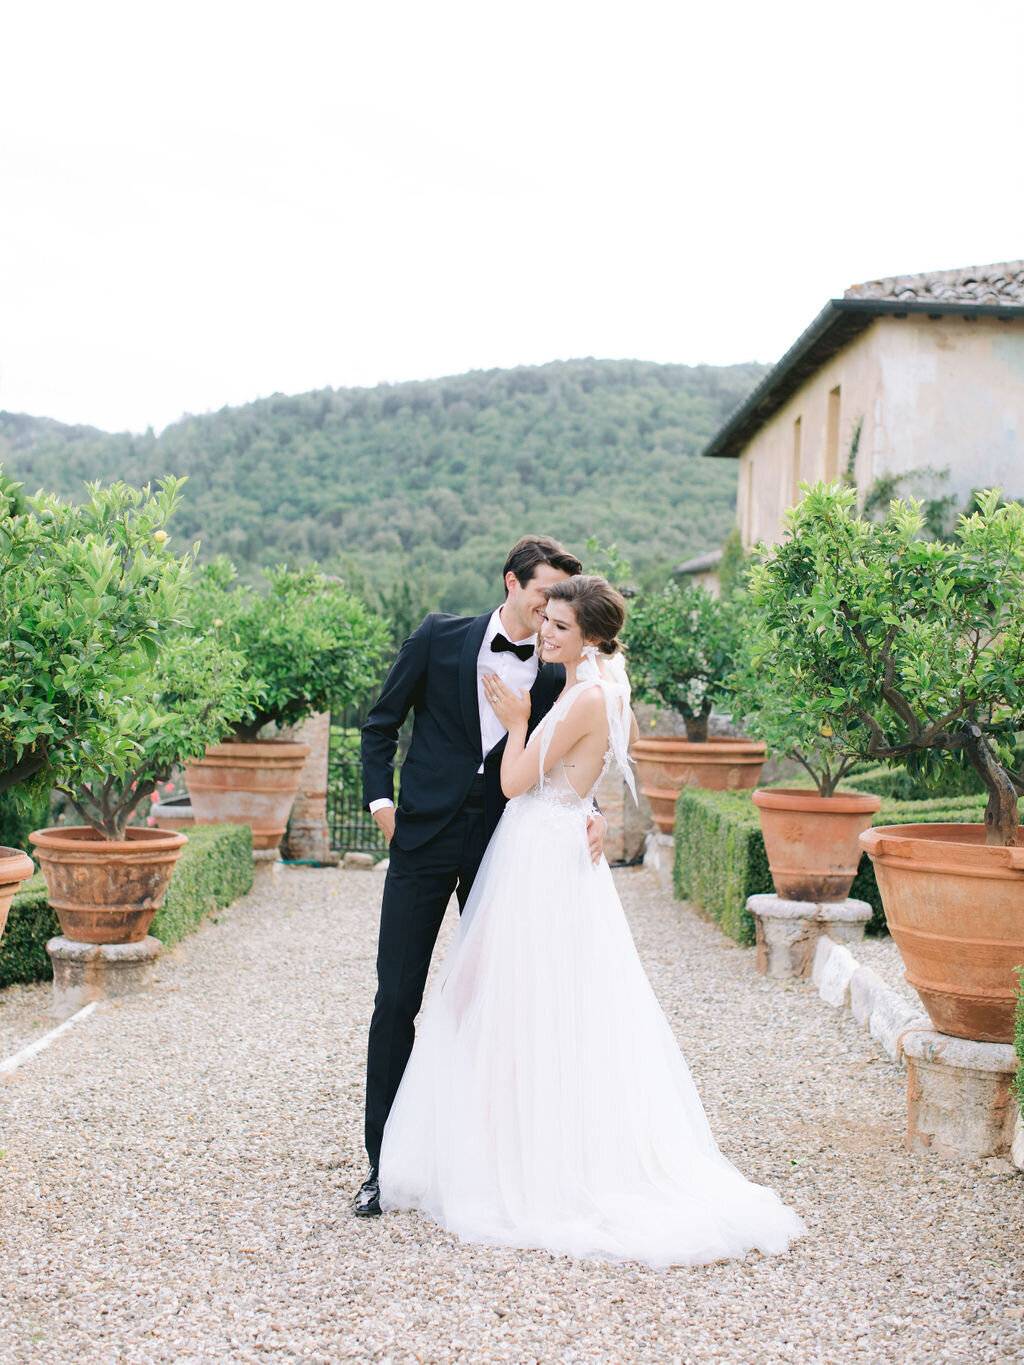 Trine_Juel_hair_and_makeupartist_wedding_Italy_Castello_Di_CelsaQuicksallPhotography_1069